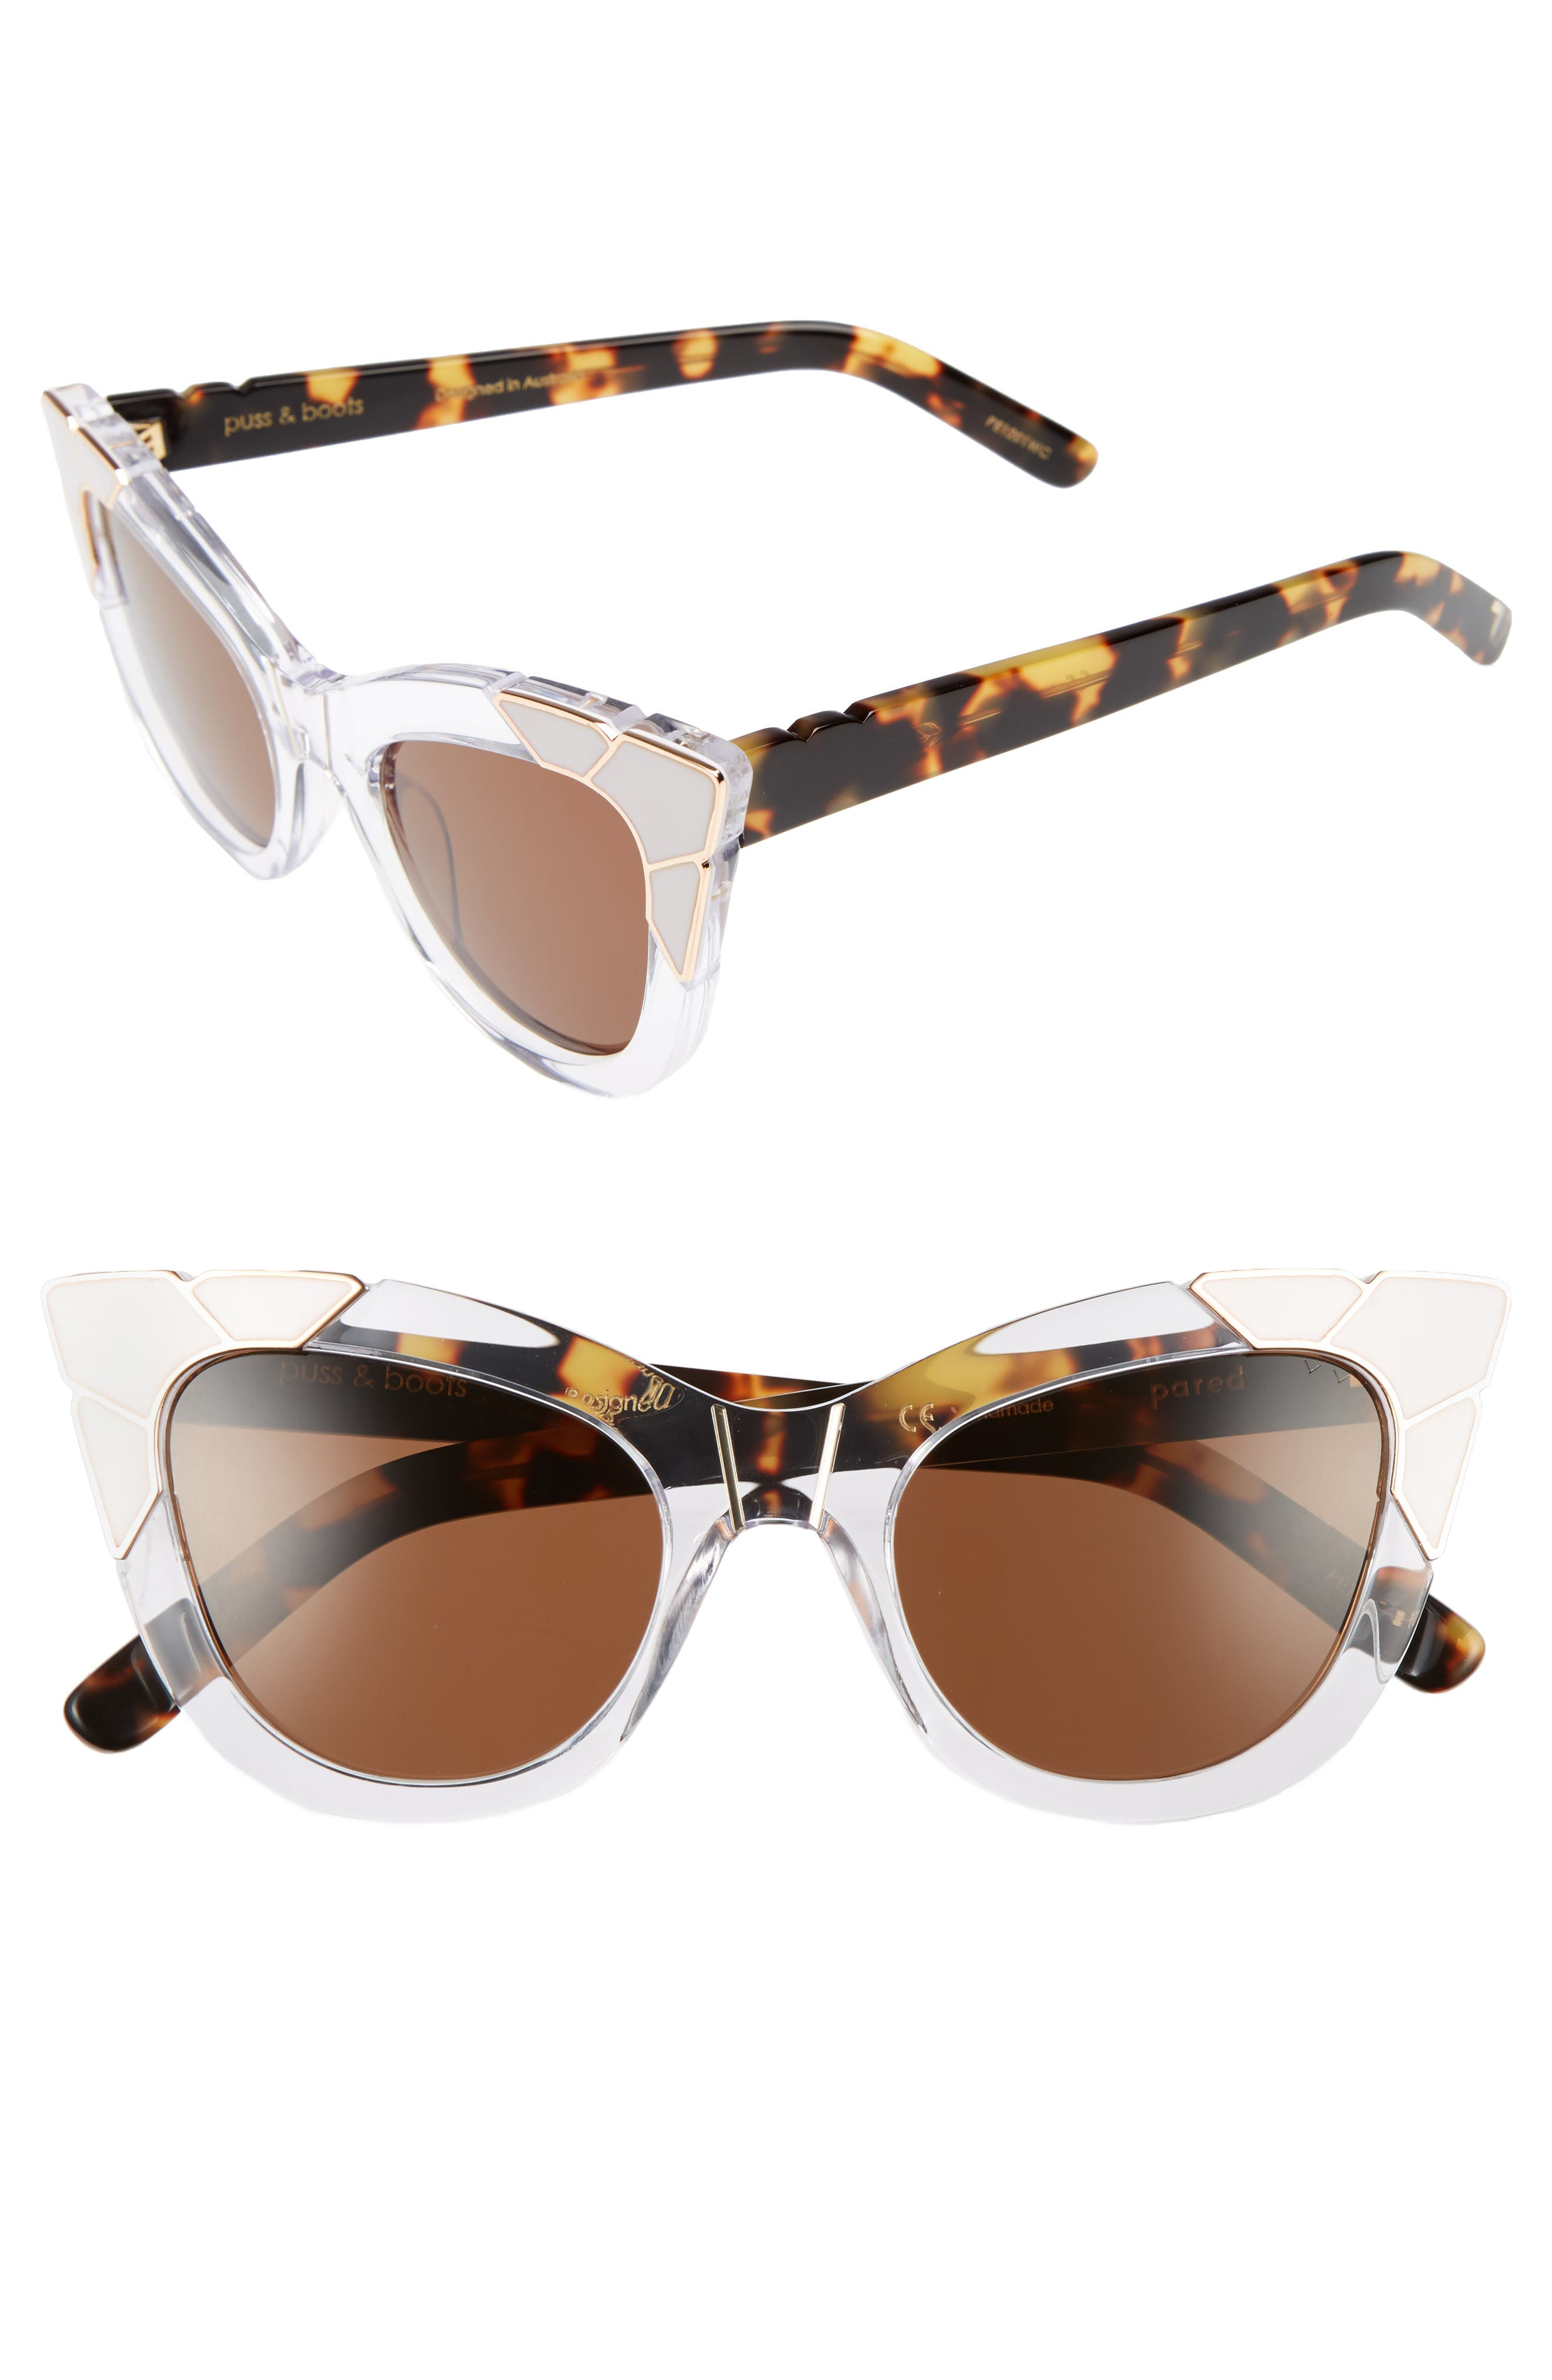 Alternate Image 1 Selected - Pared Puss & Boots 49mm Cat Eye Sunglasses